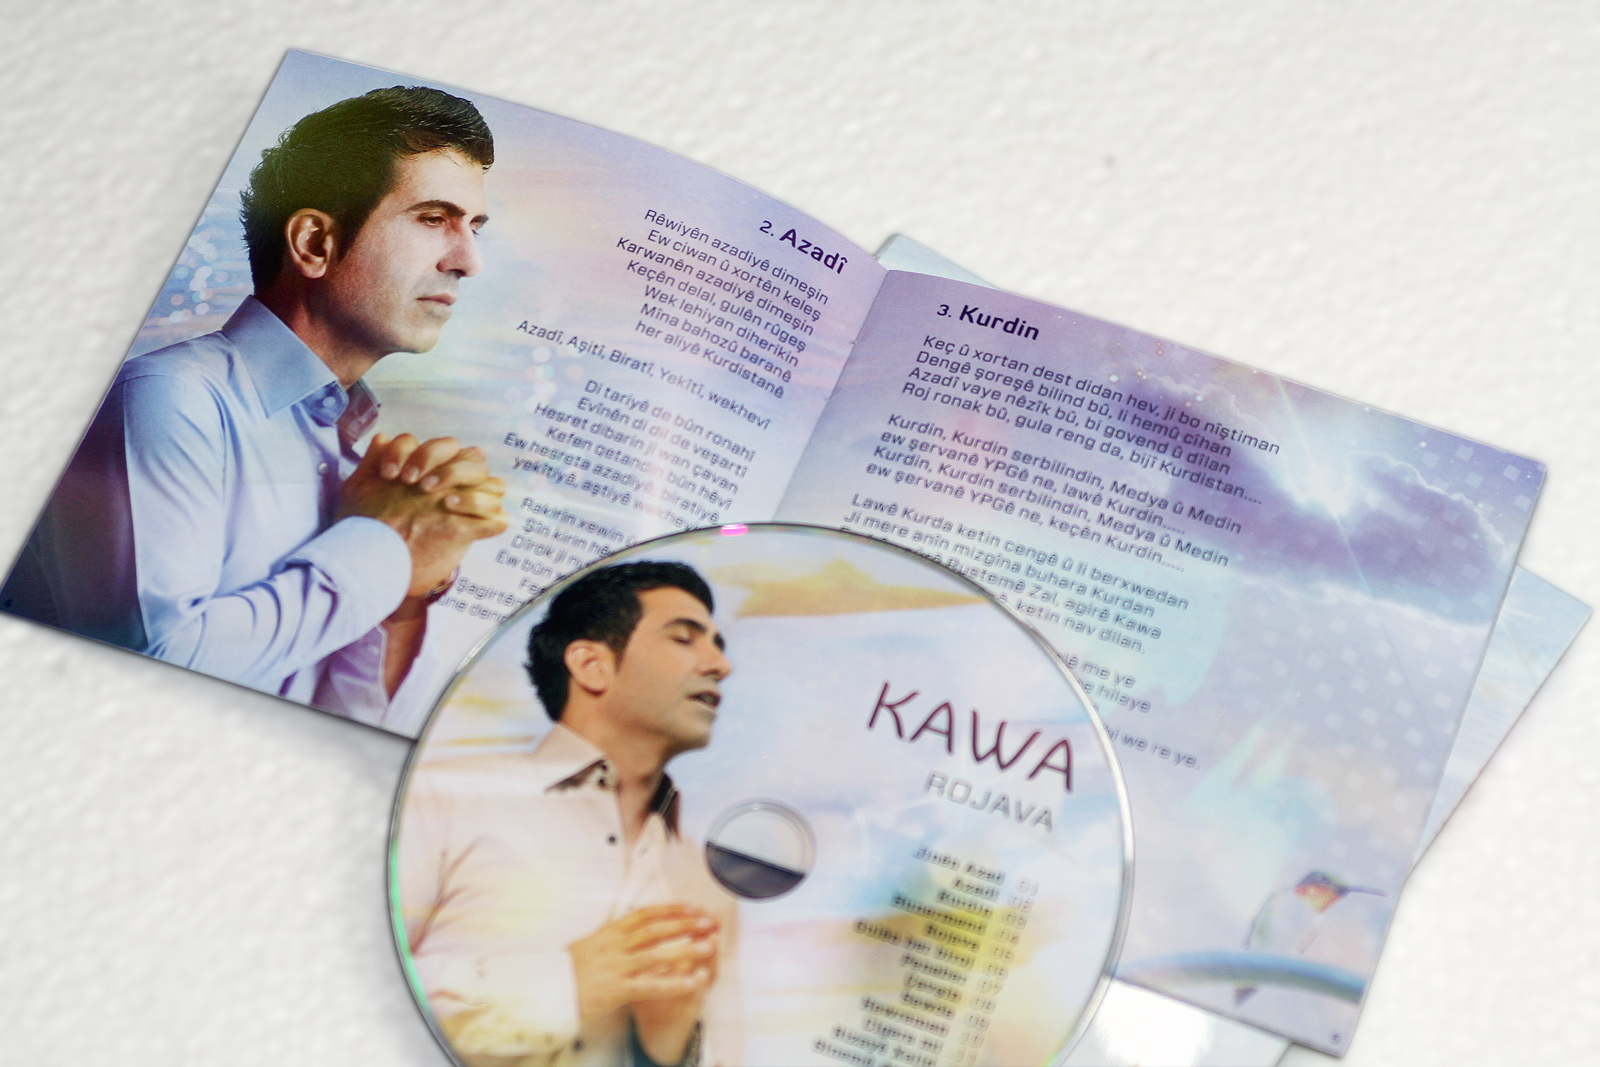 Kawa CD Booklet